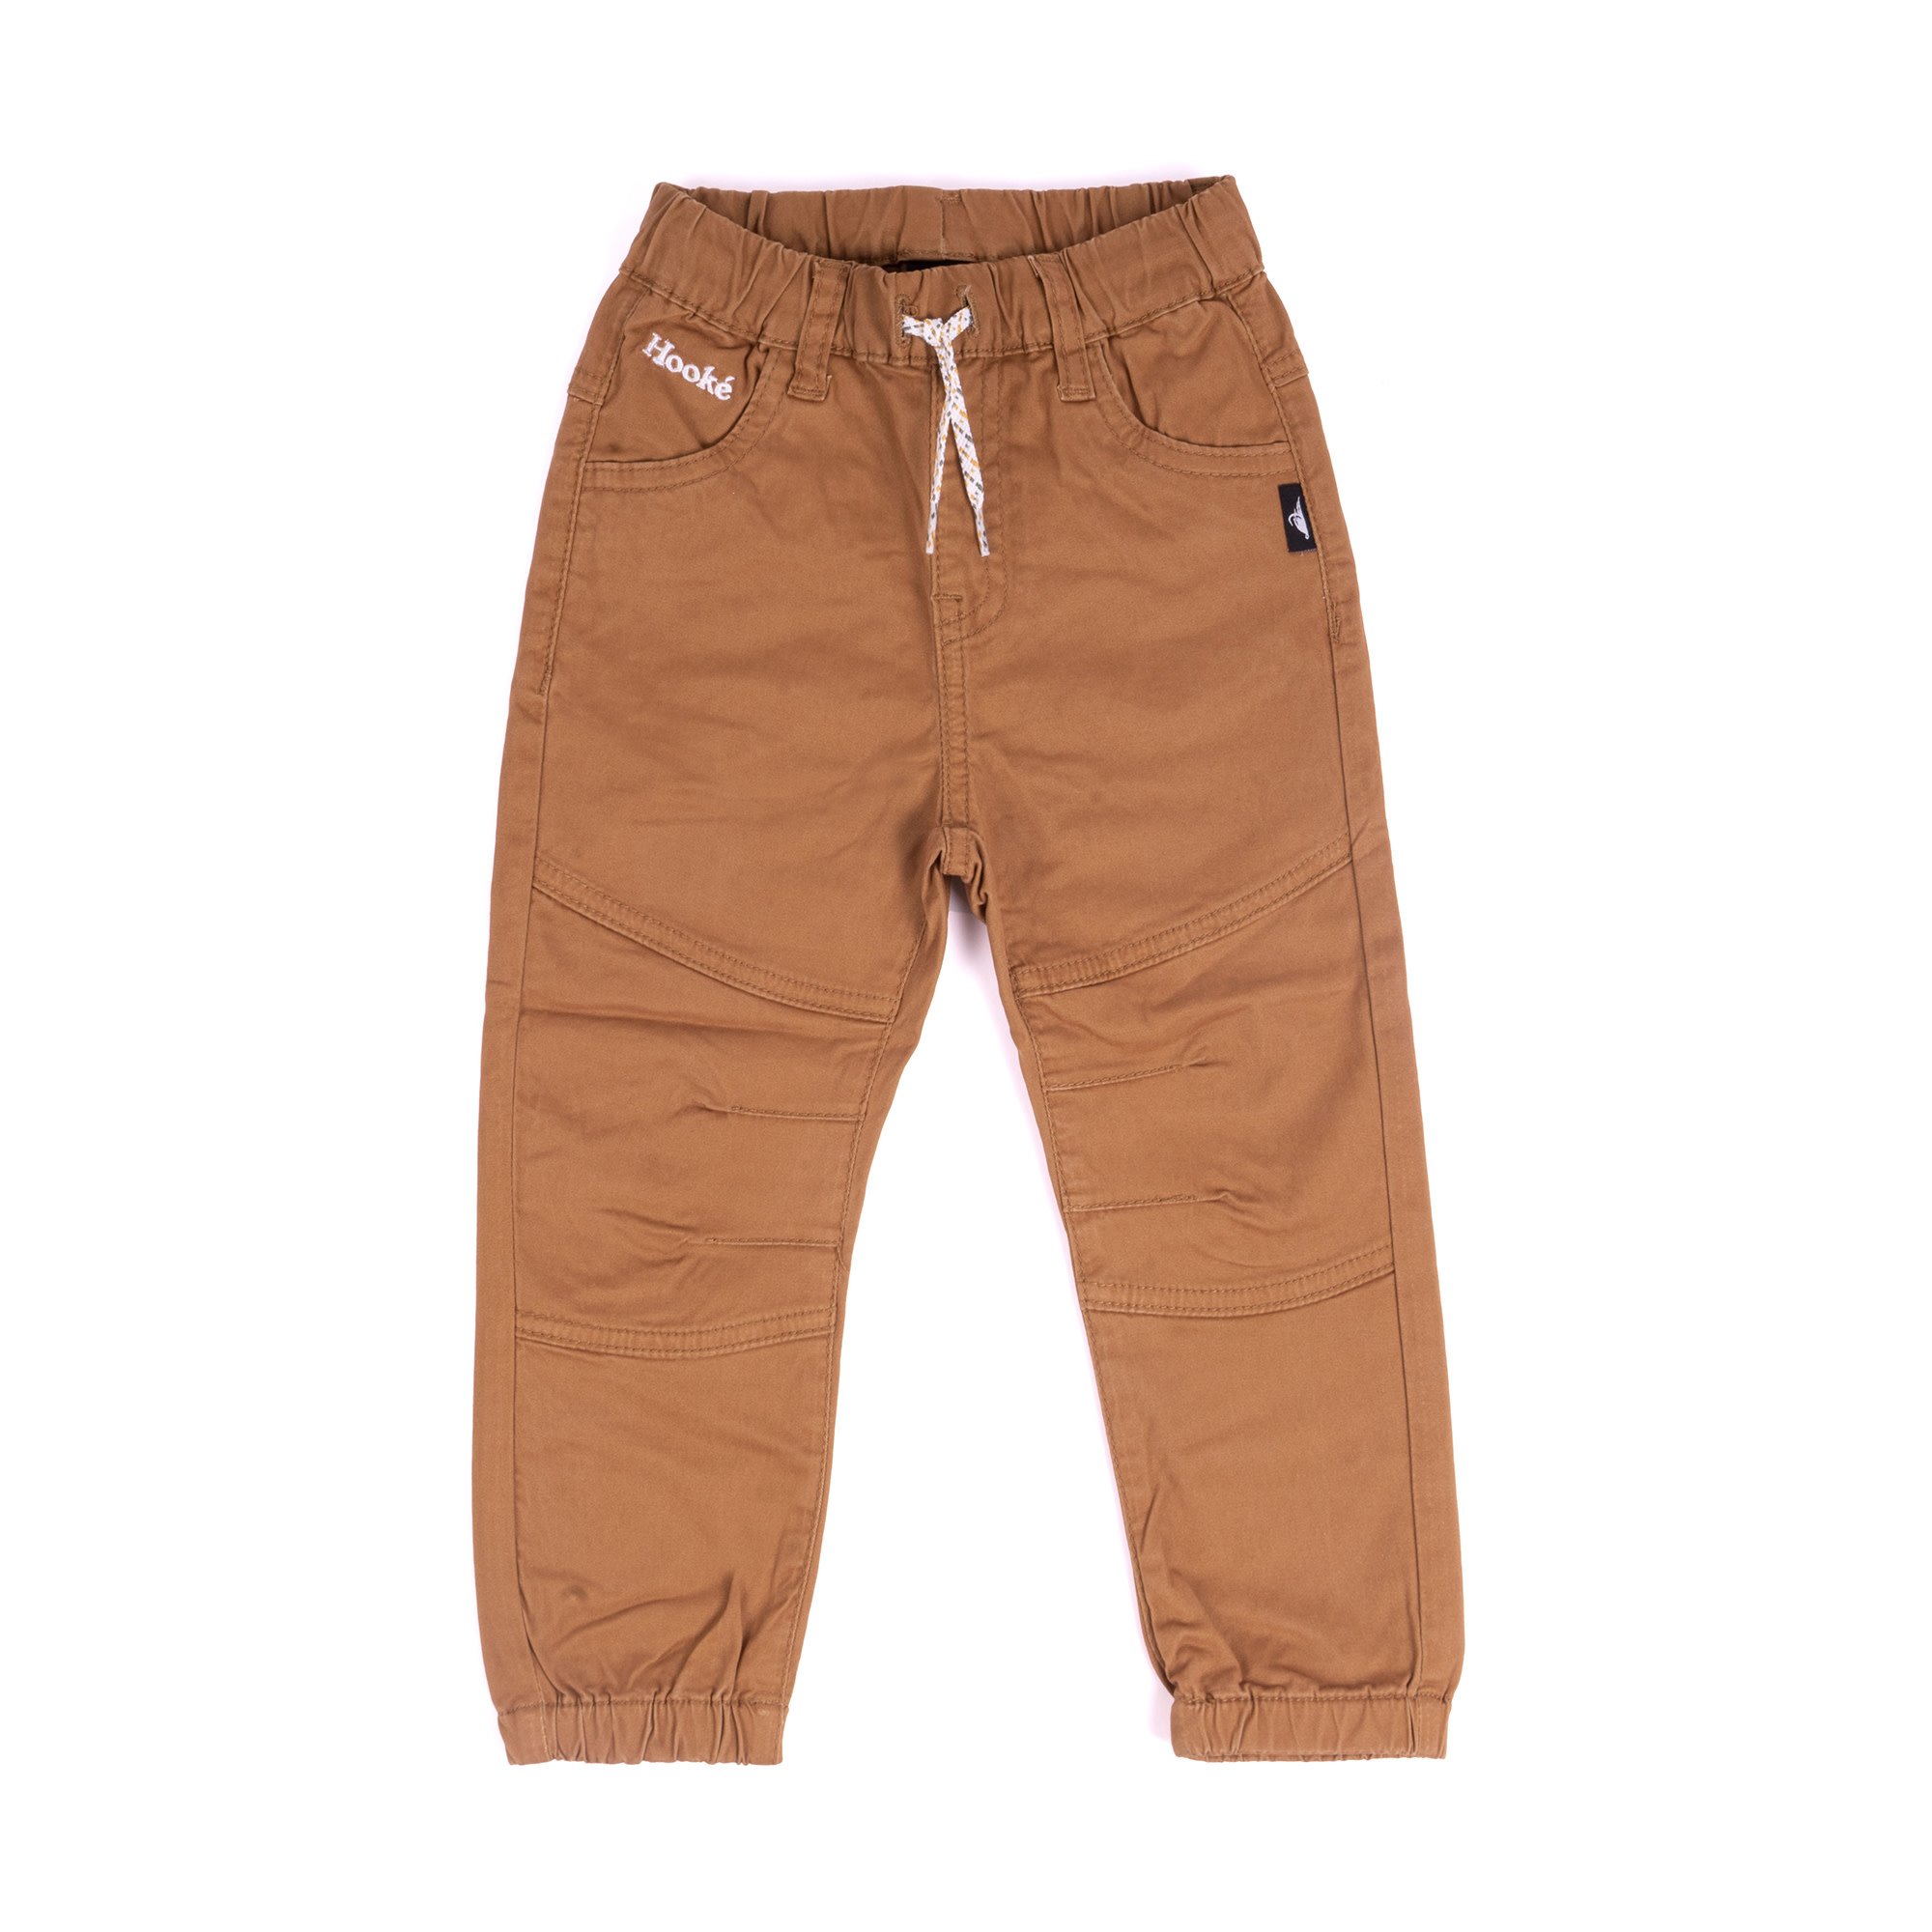 Twill Pants Brown Sugar